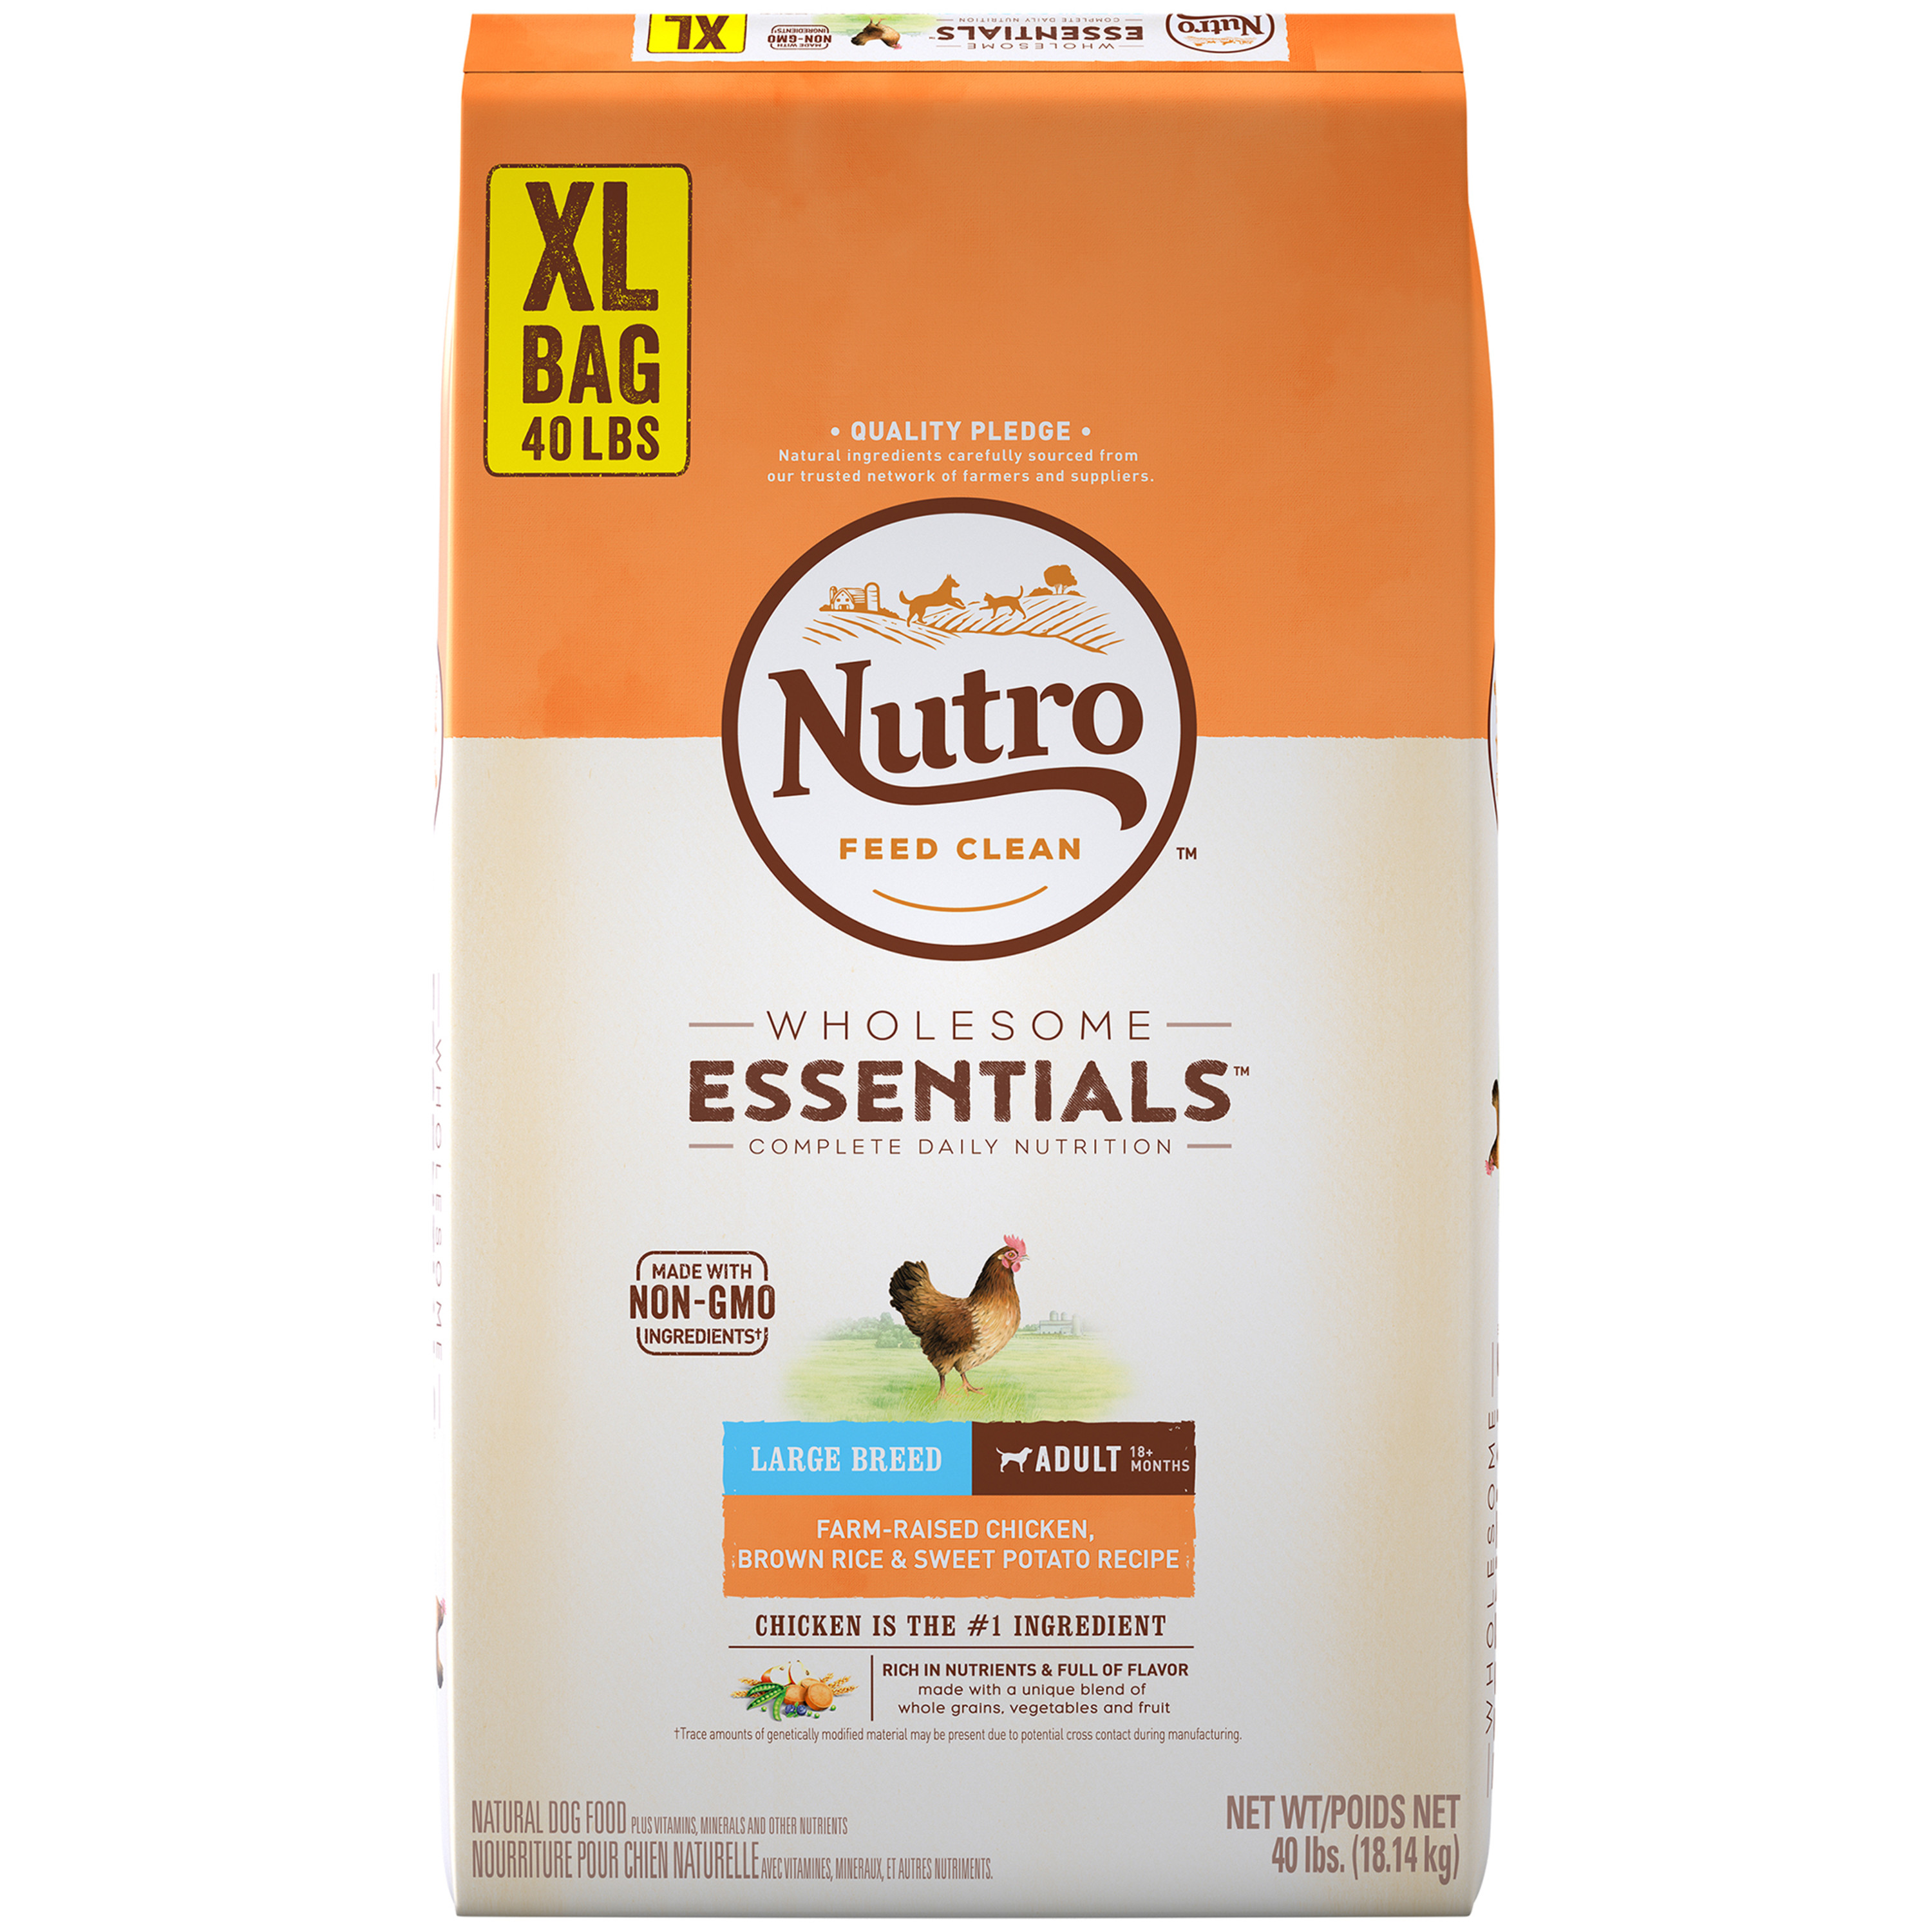 Nutro wholesome essentials large breed adult dry dog food farm nutro wholesome essentials large breed adult dry dog food farm raised chicken brown rice sweet potato recipe 40 lb walmart forumfinder Choice Image